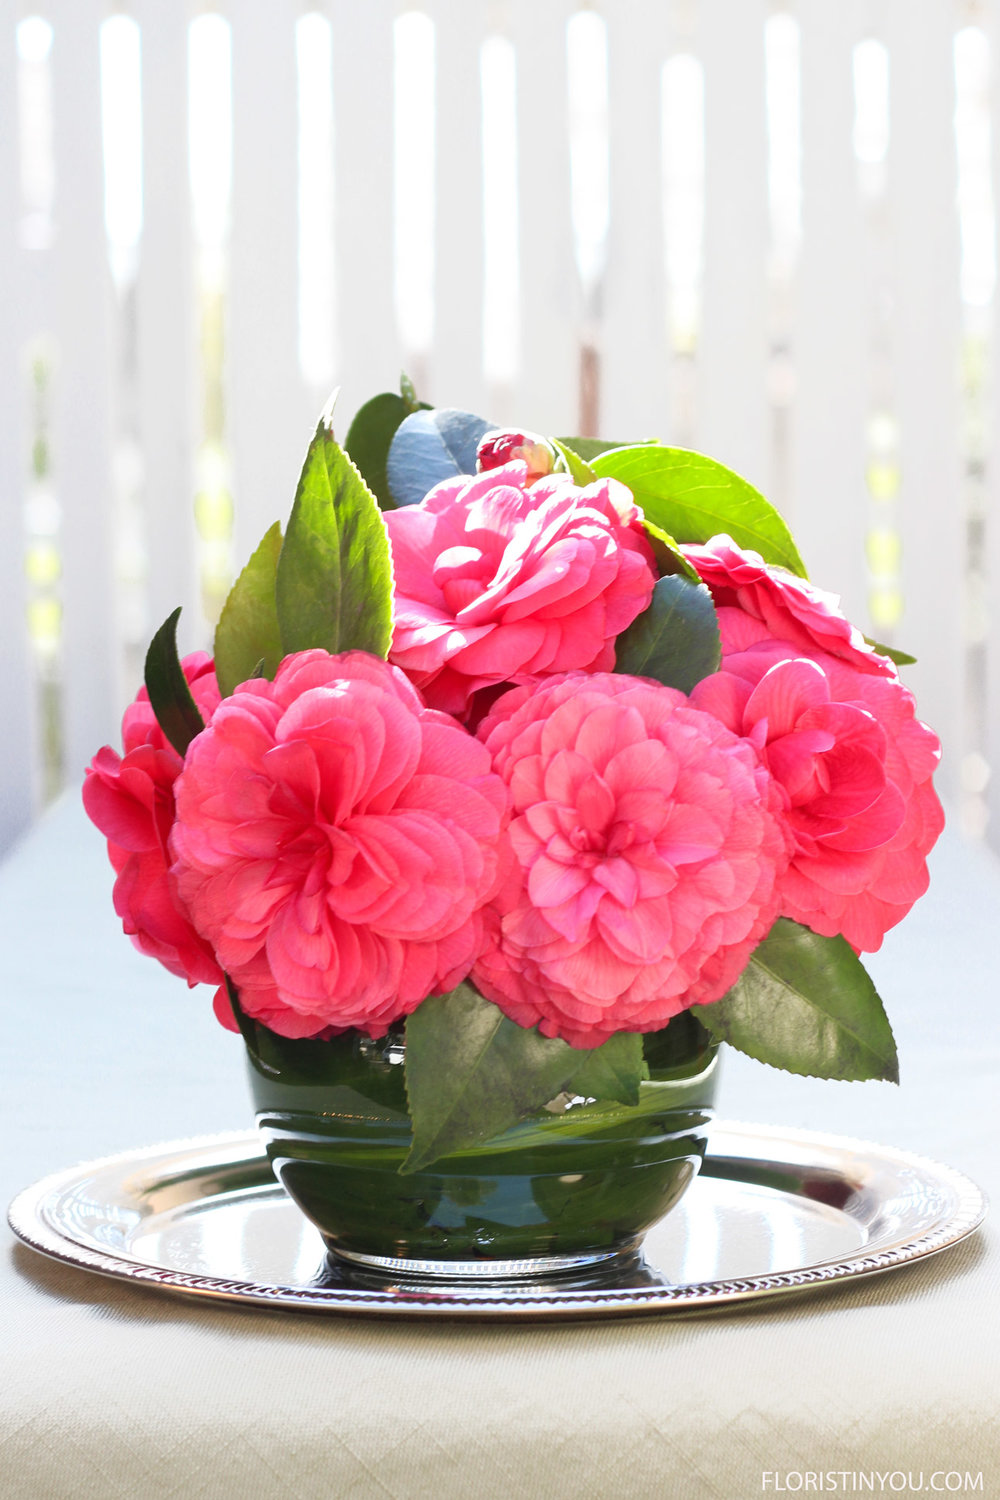 Now you have a beautiful little centerpiece from your garden.  Enjoy.